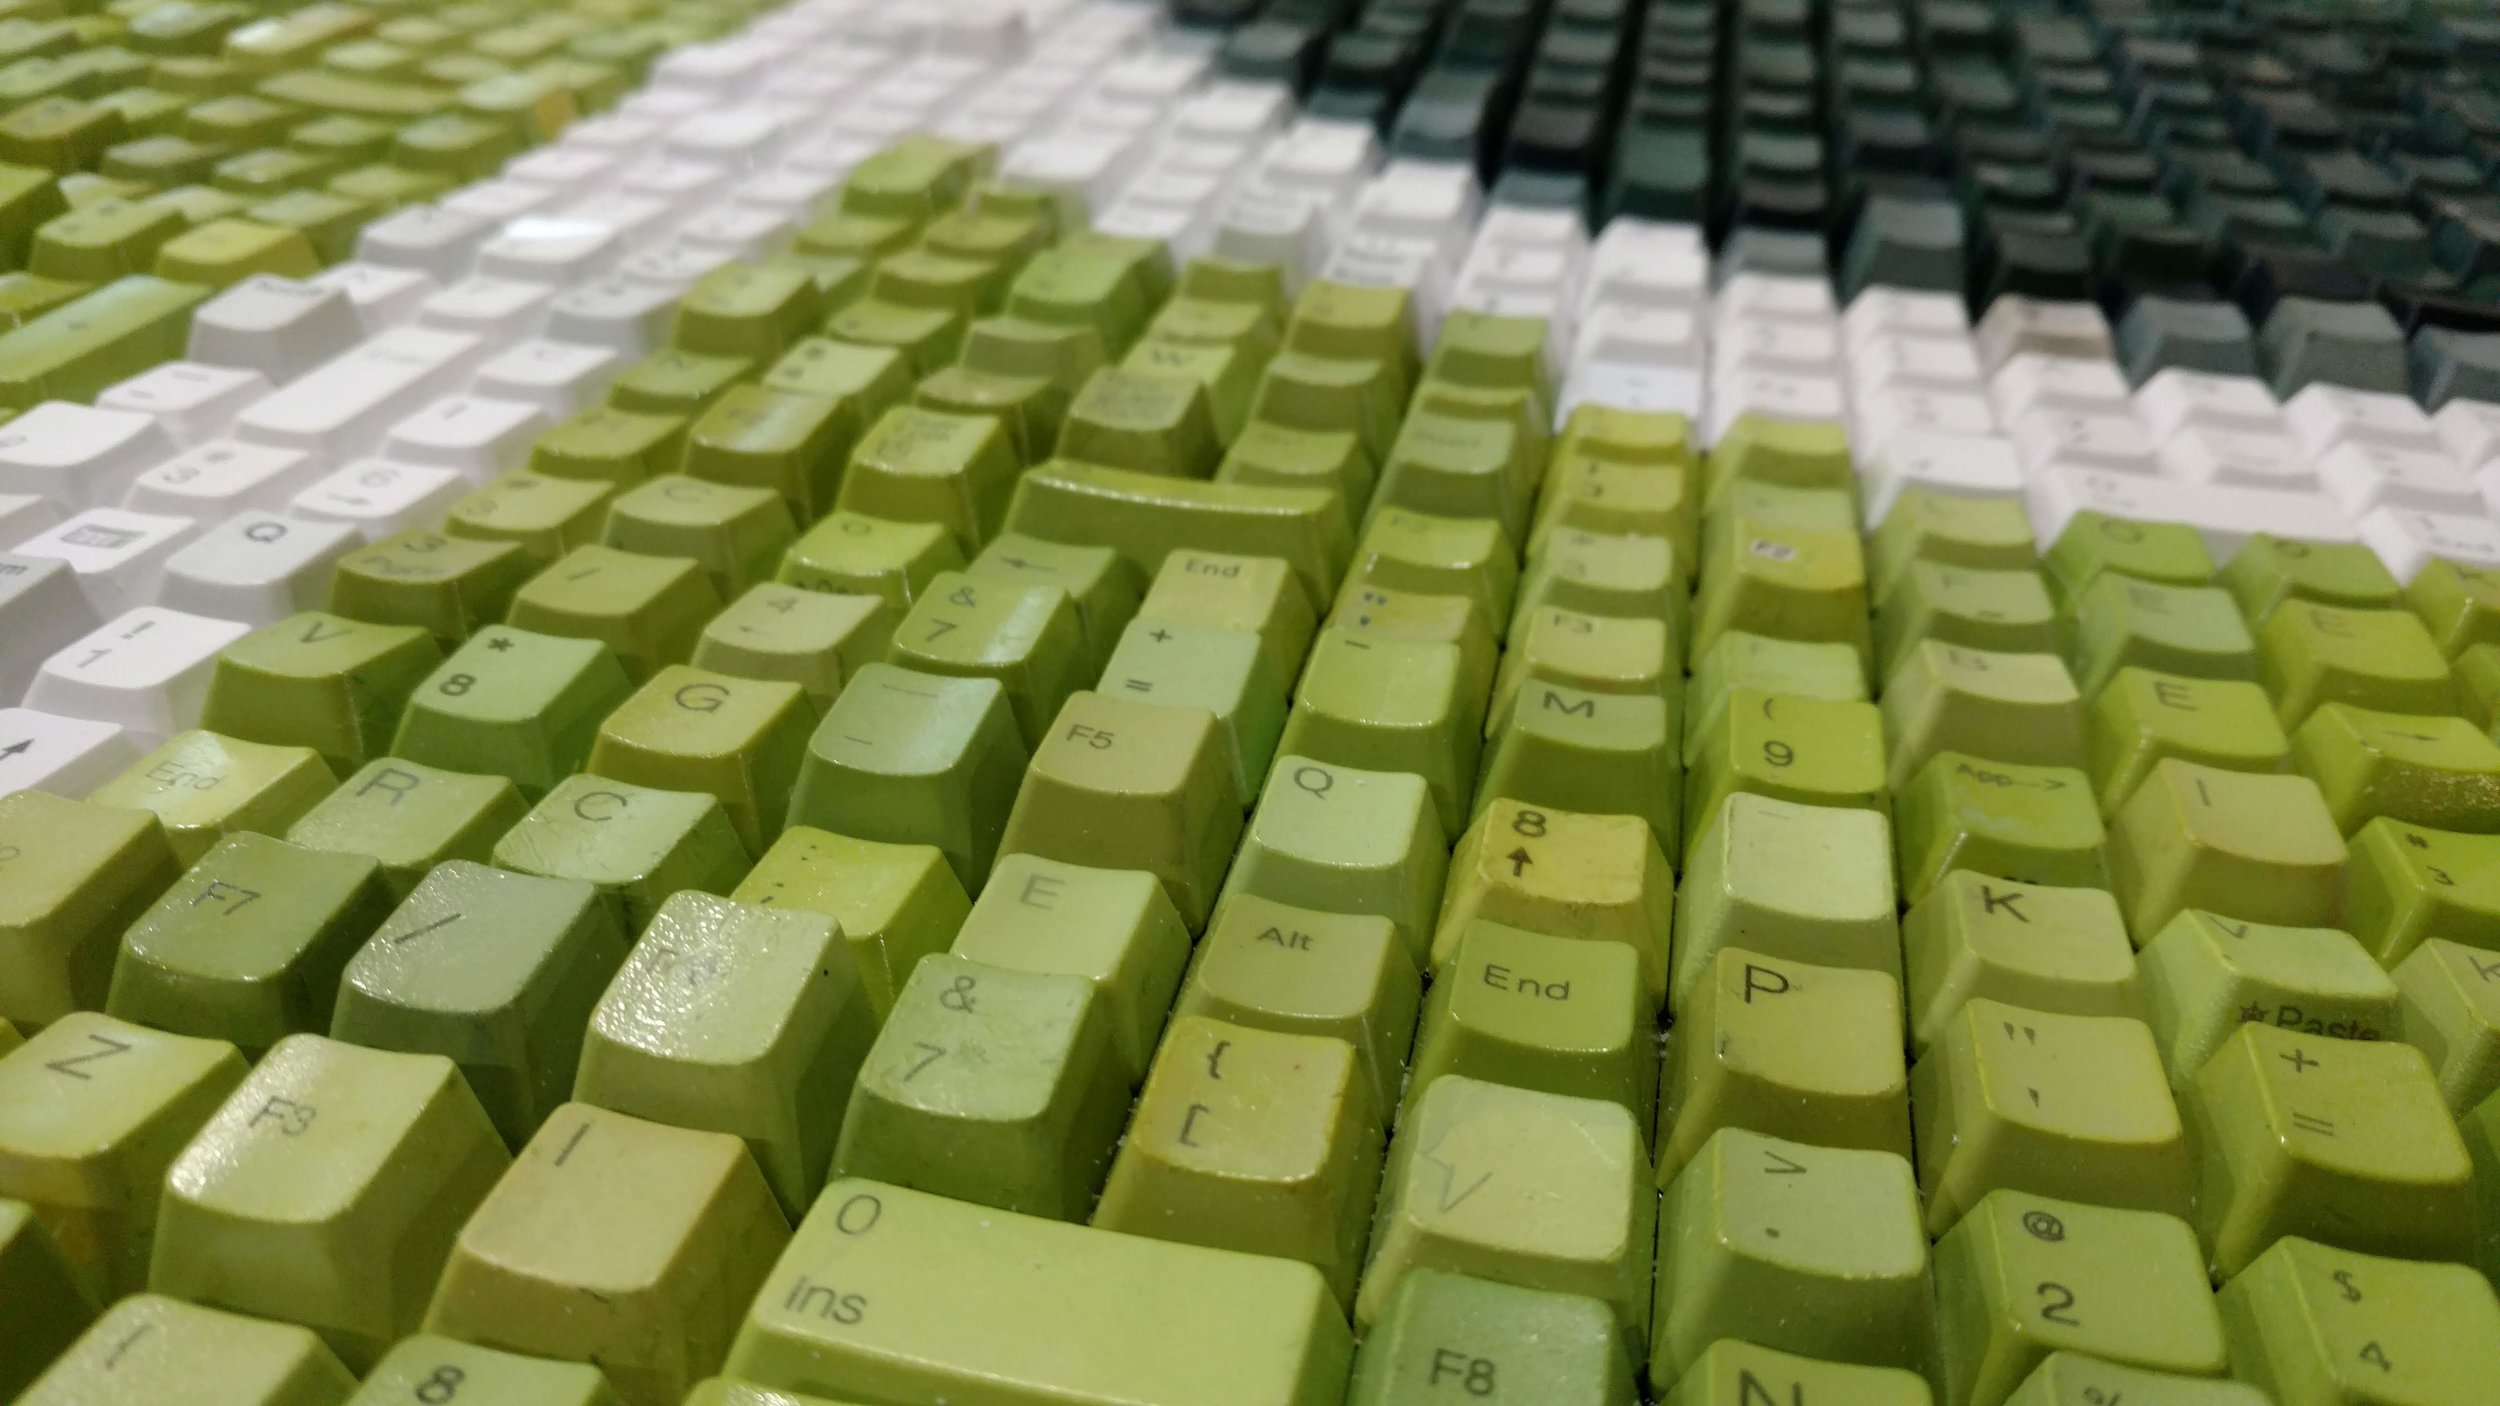 Close up of the texture and color of keys